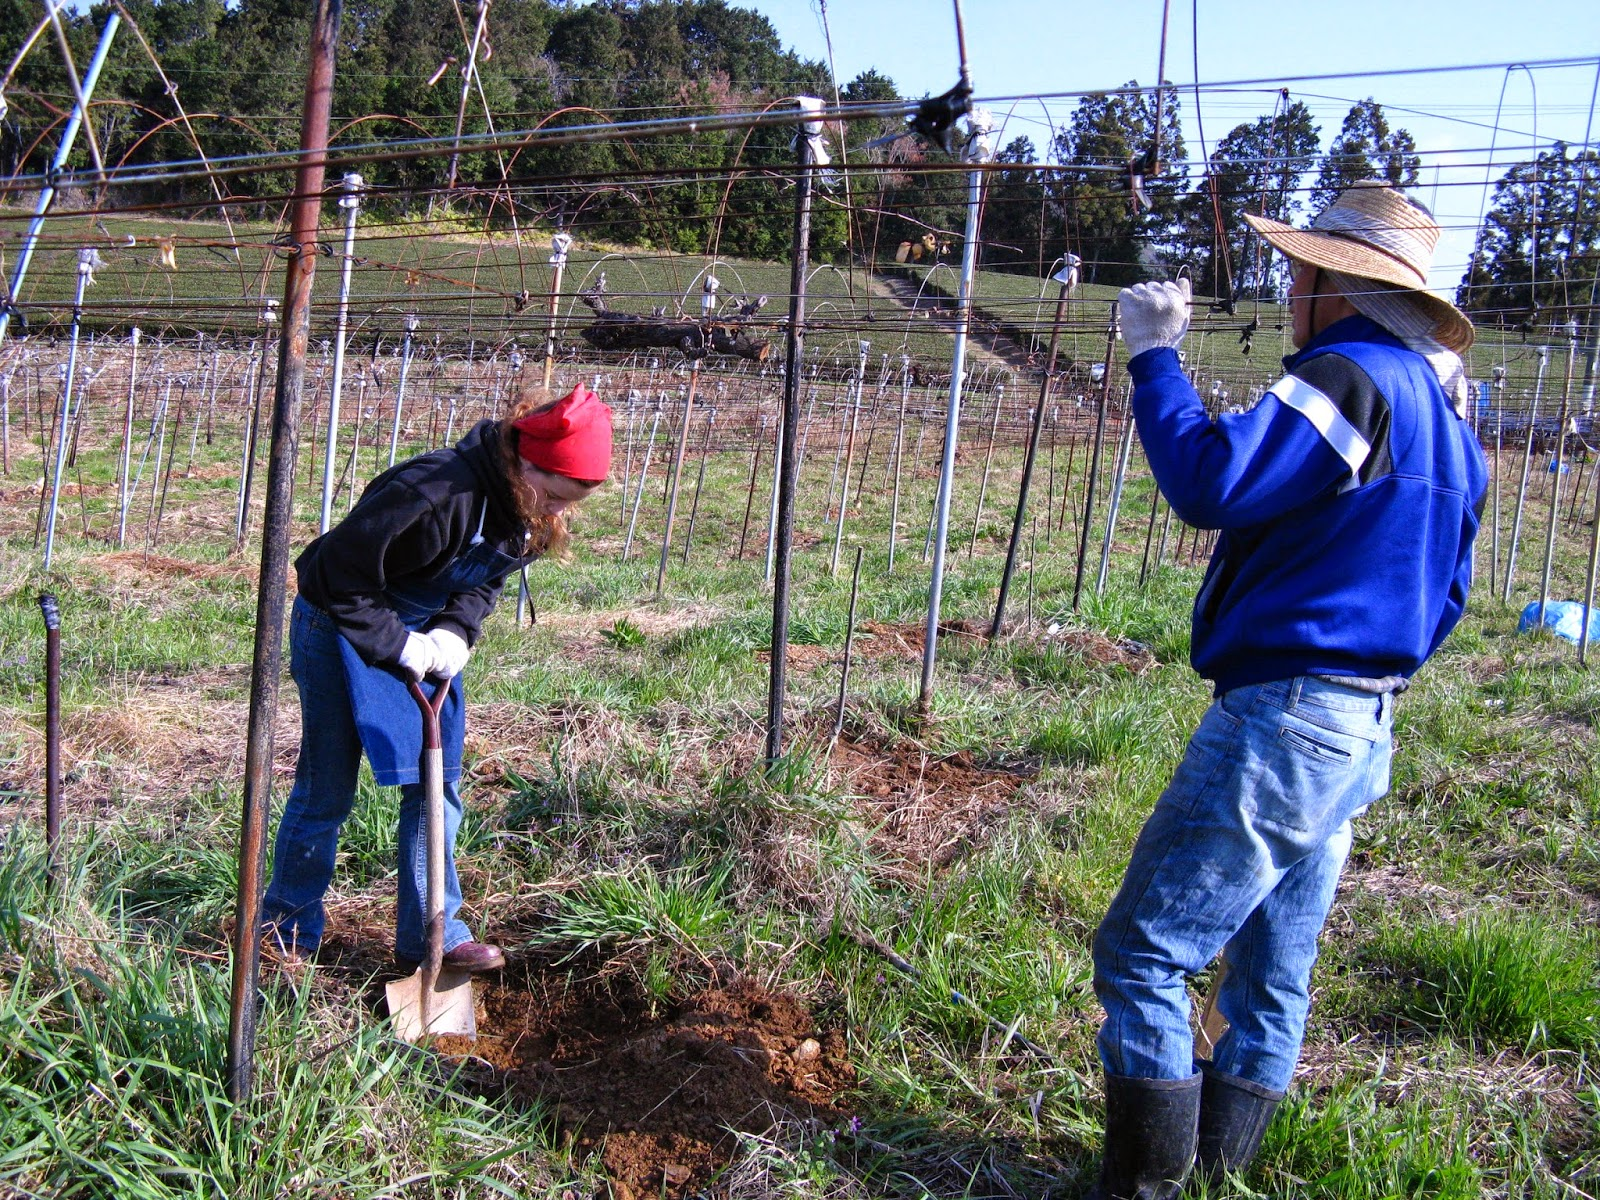 WWOOF Japan planting grape trees for wine